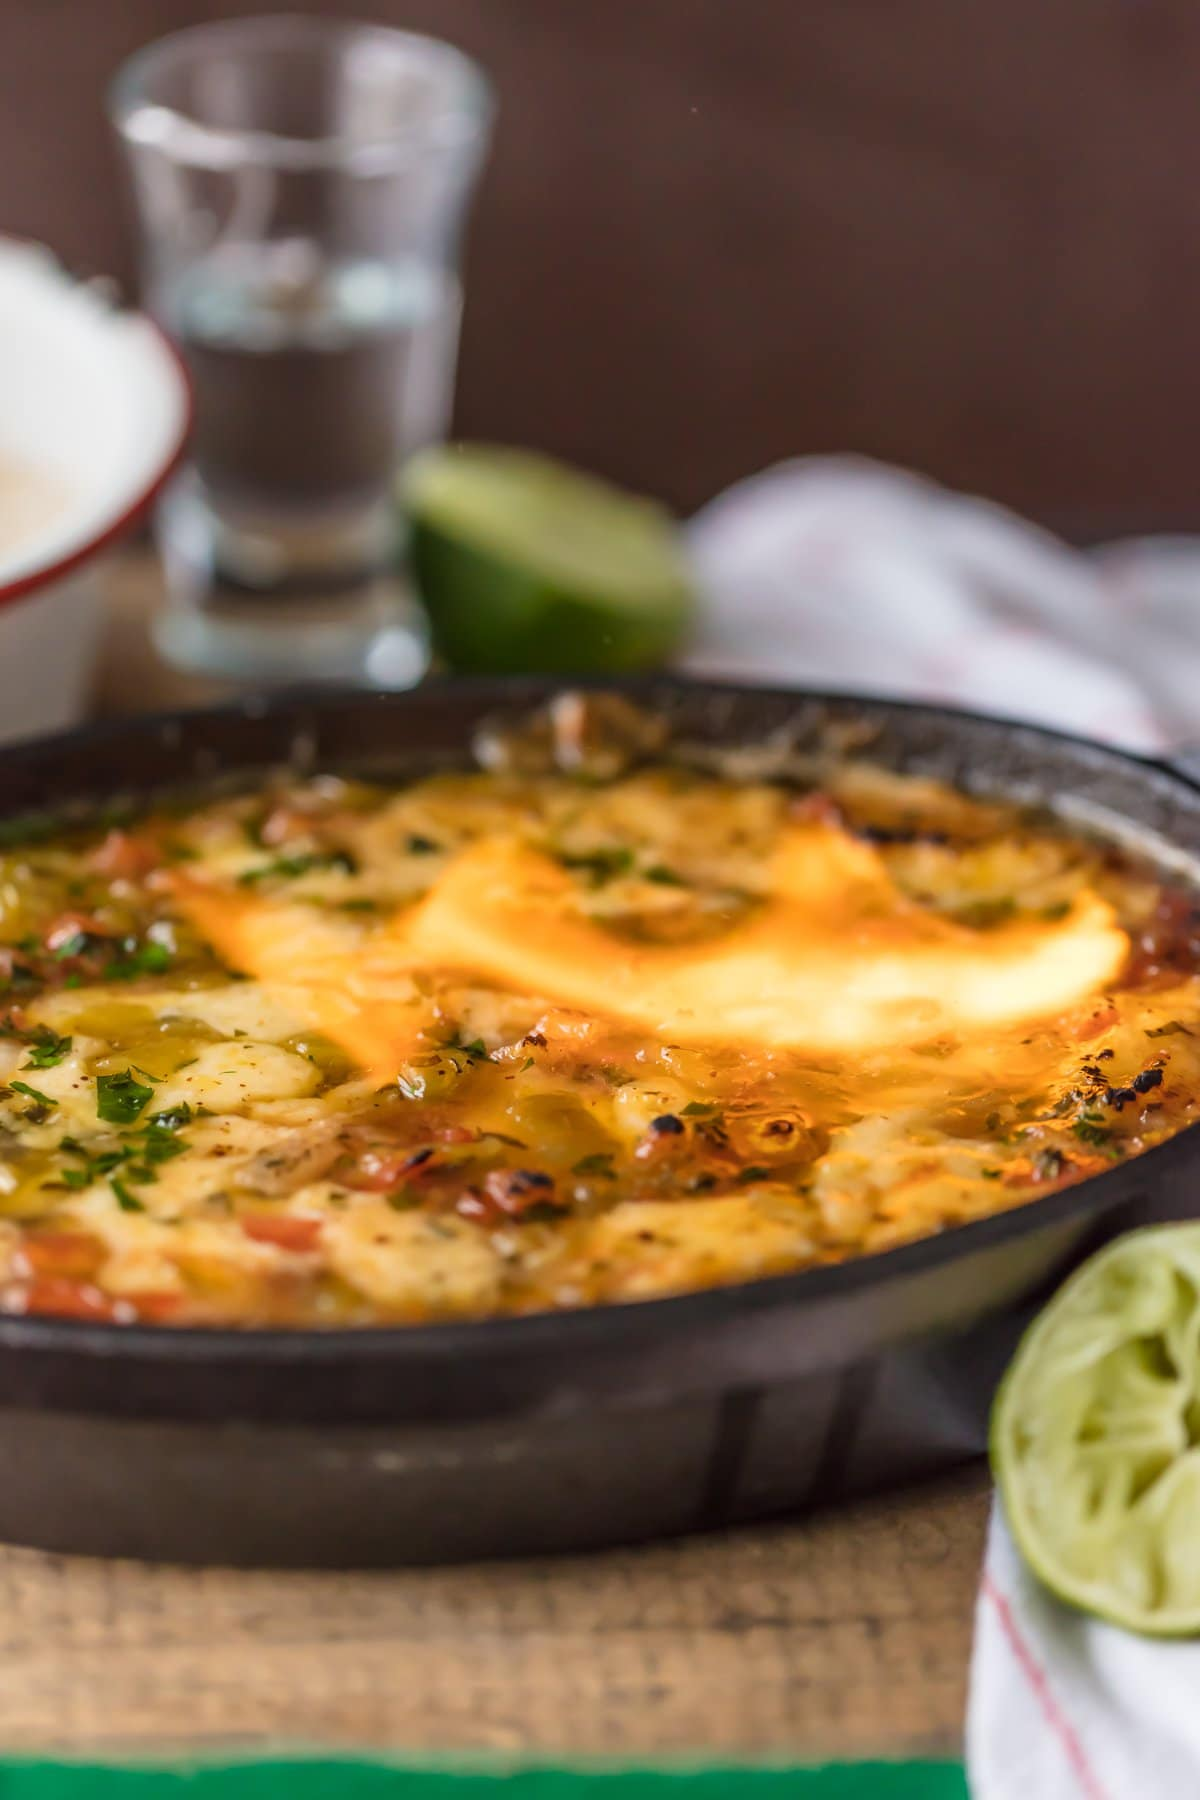 Tequila Lime Flaming Cheese Dip